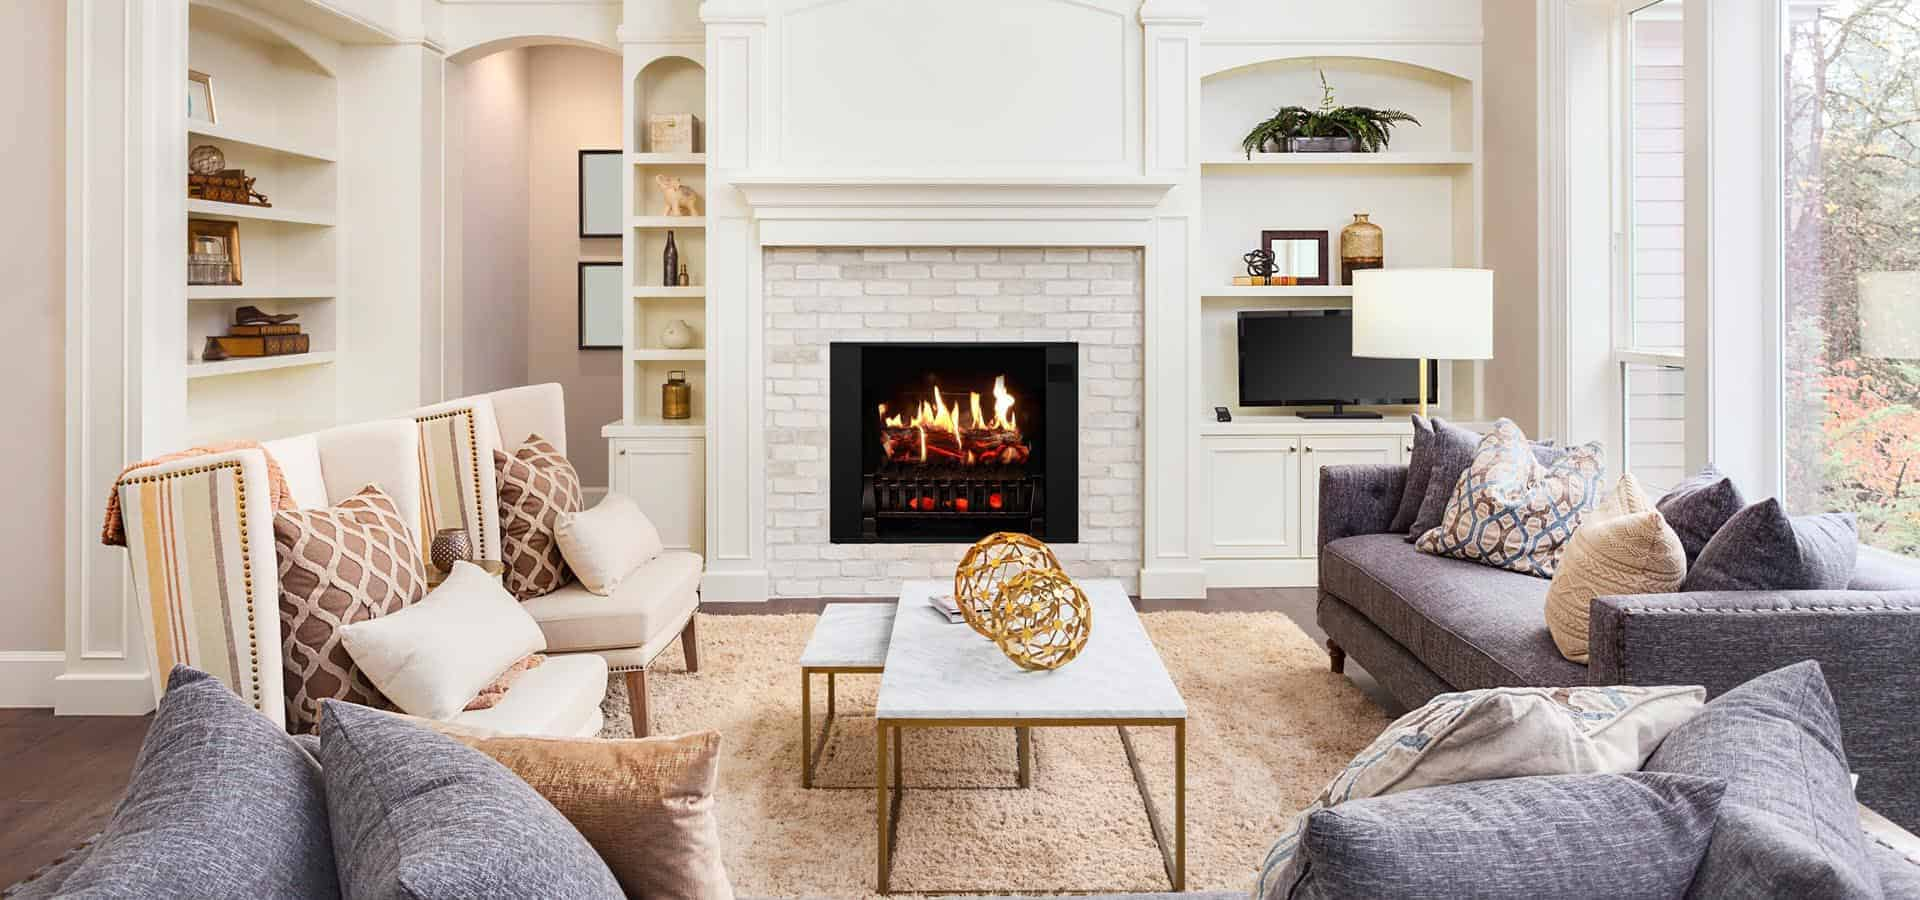 is an electric fireplace worth it